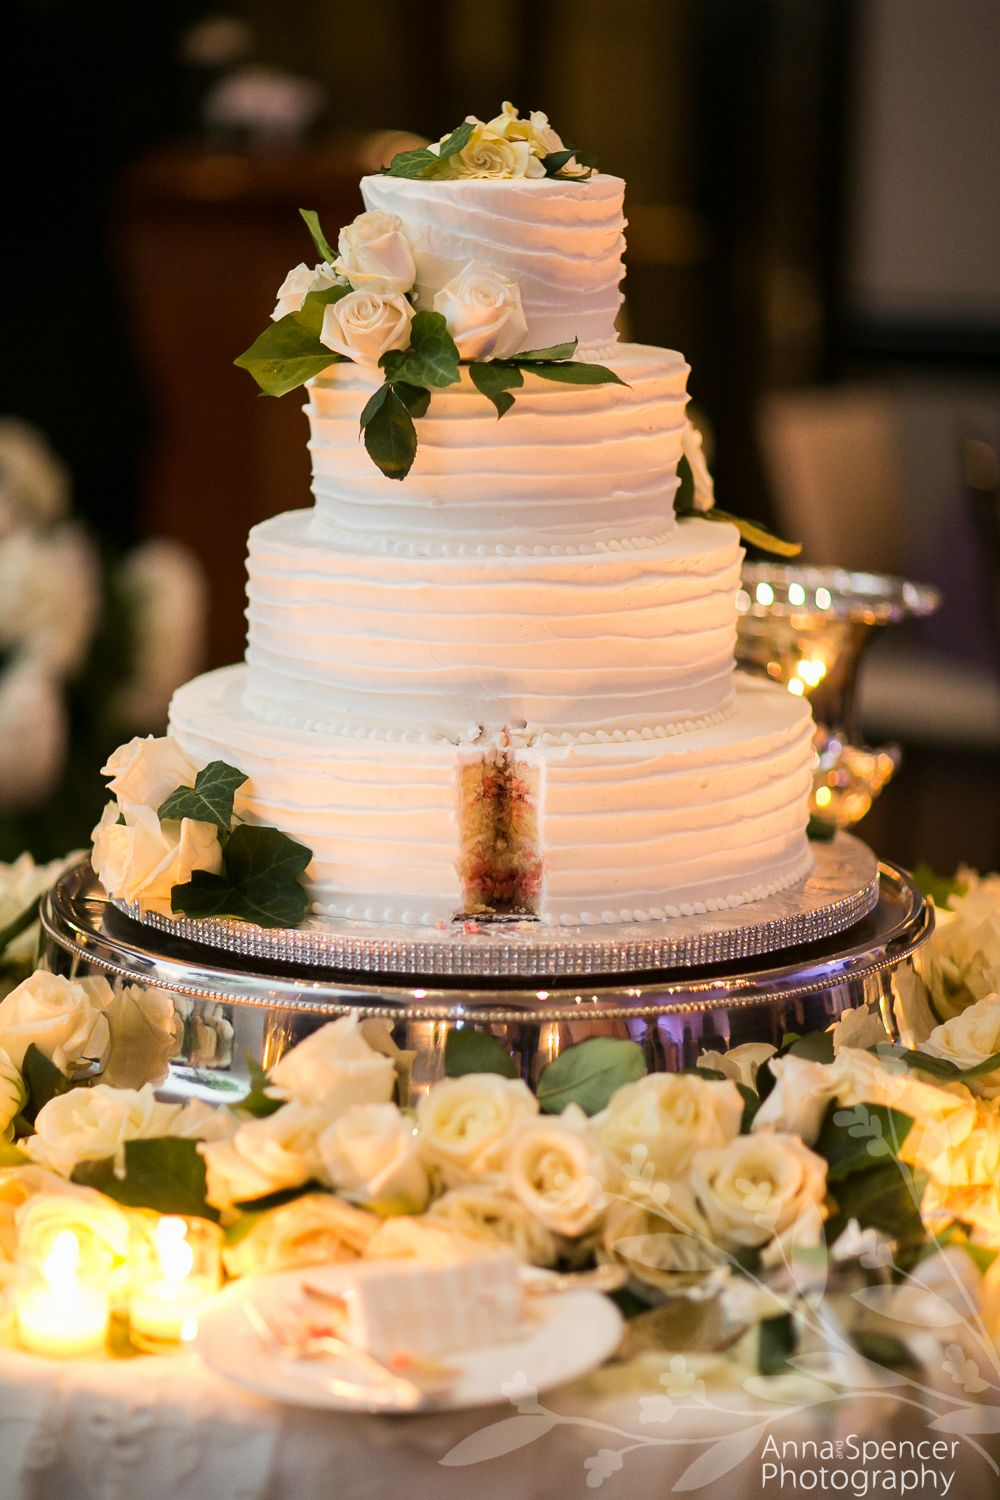 White Wedding Cake With A Slice Taken Out Clic Cheesecakes And Cakes Bakery Britt Wood Designs Florist